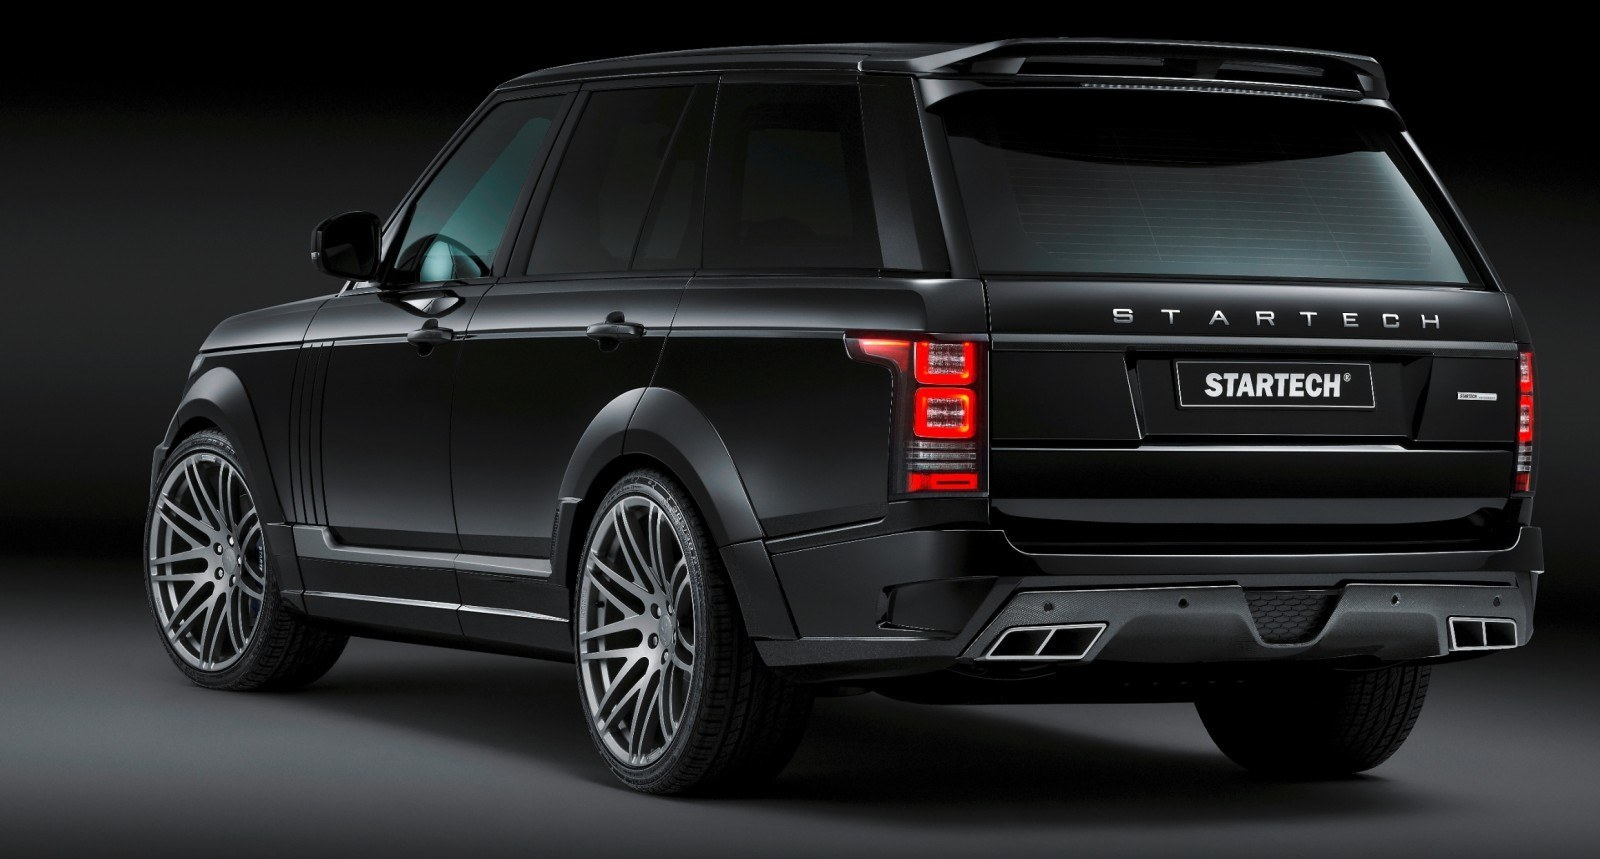 2013-2015 Range Rover By StarTech Brings Best of BRABUS Tech to Lux SUV King 65